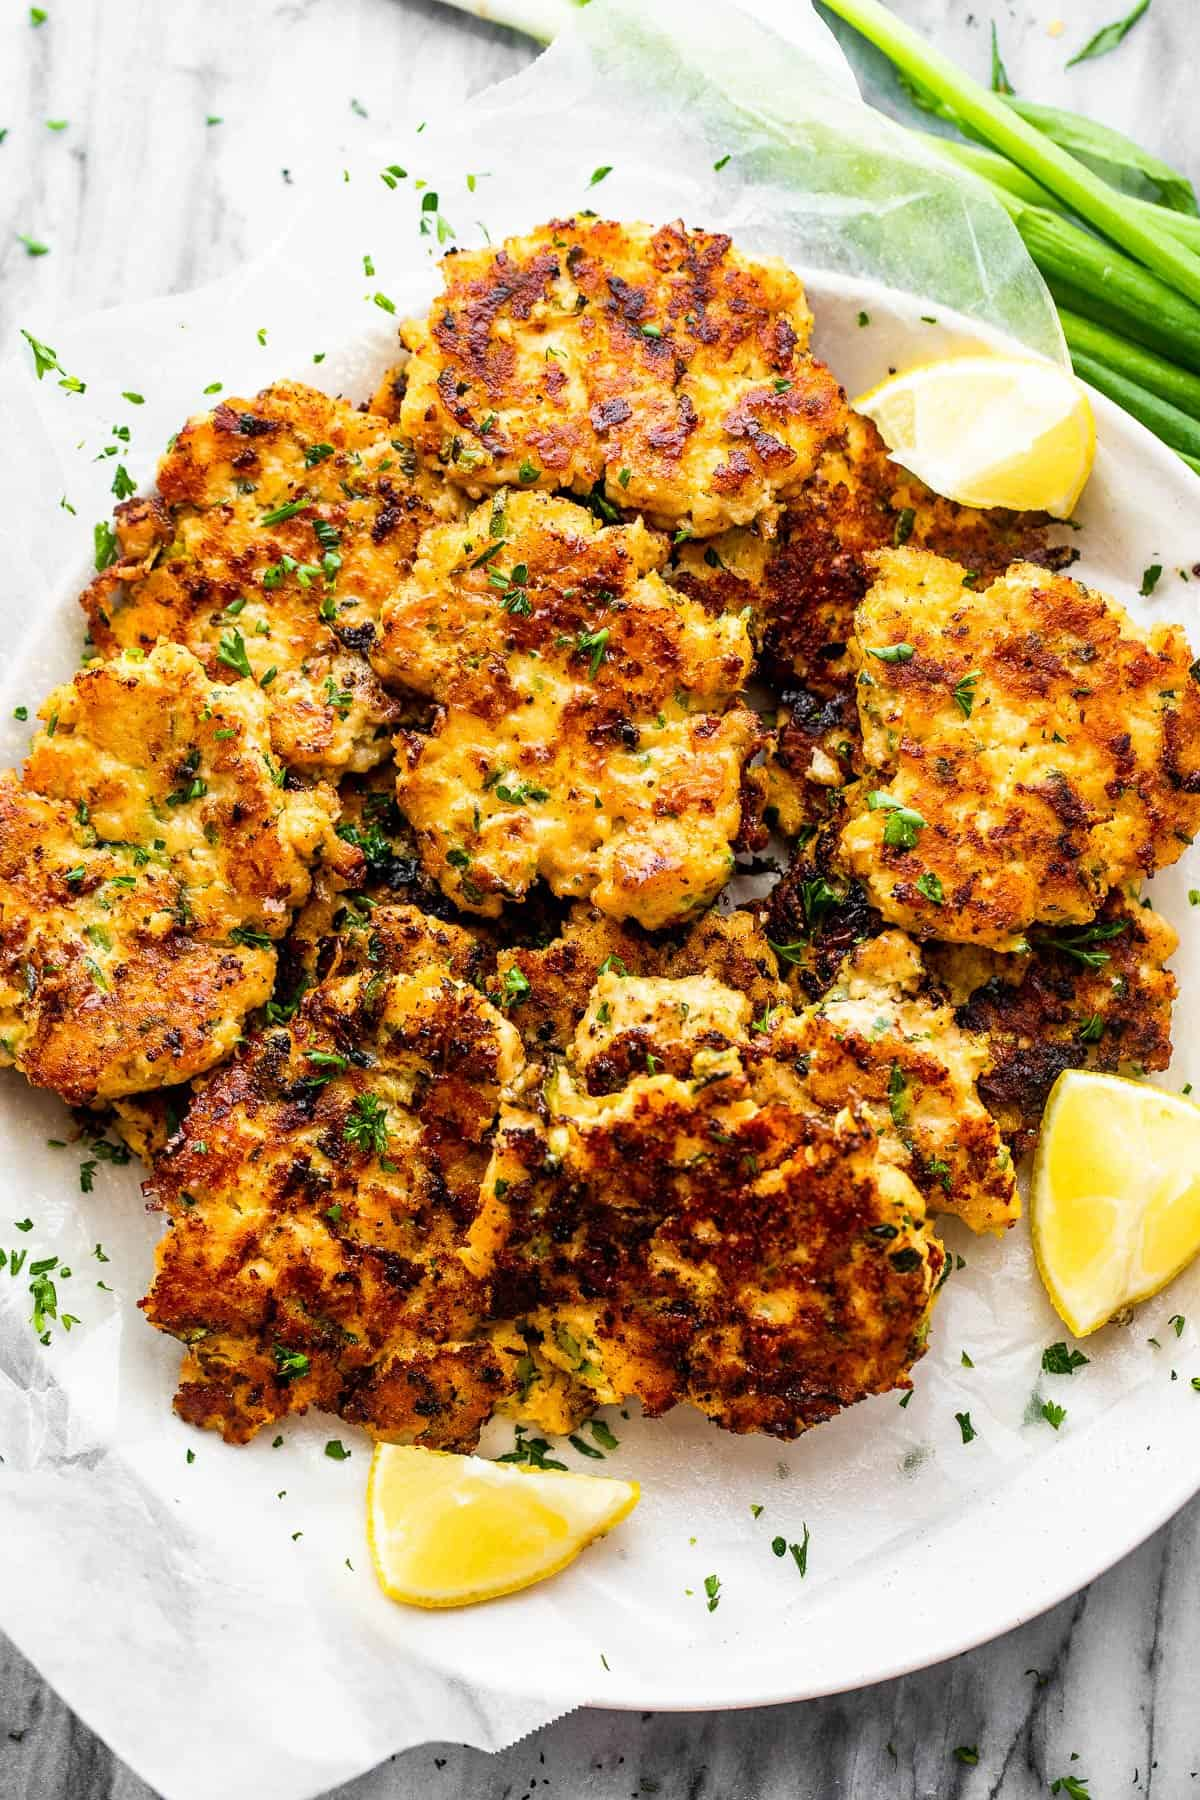 zucchini chicken fritters served on a plate with lemon wedges and green onions to the side.